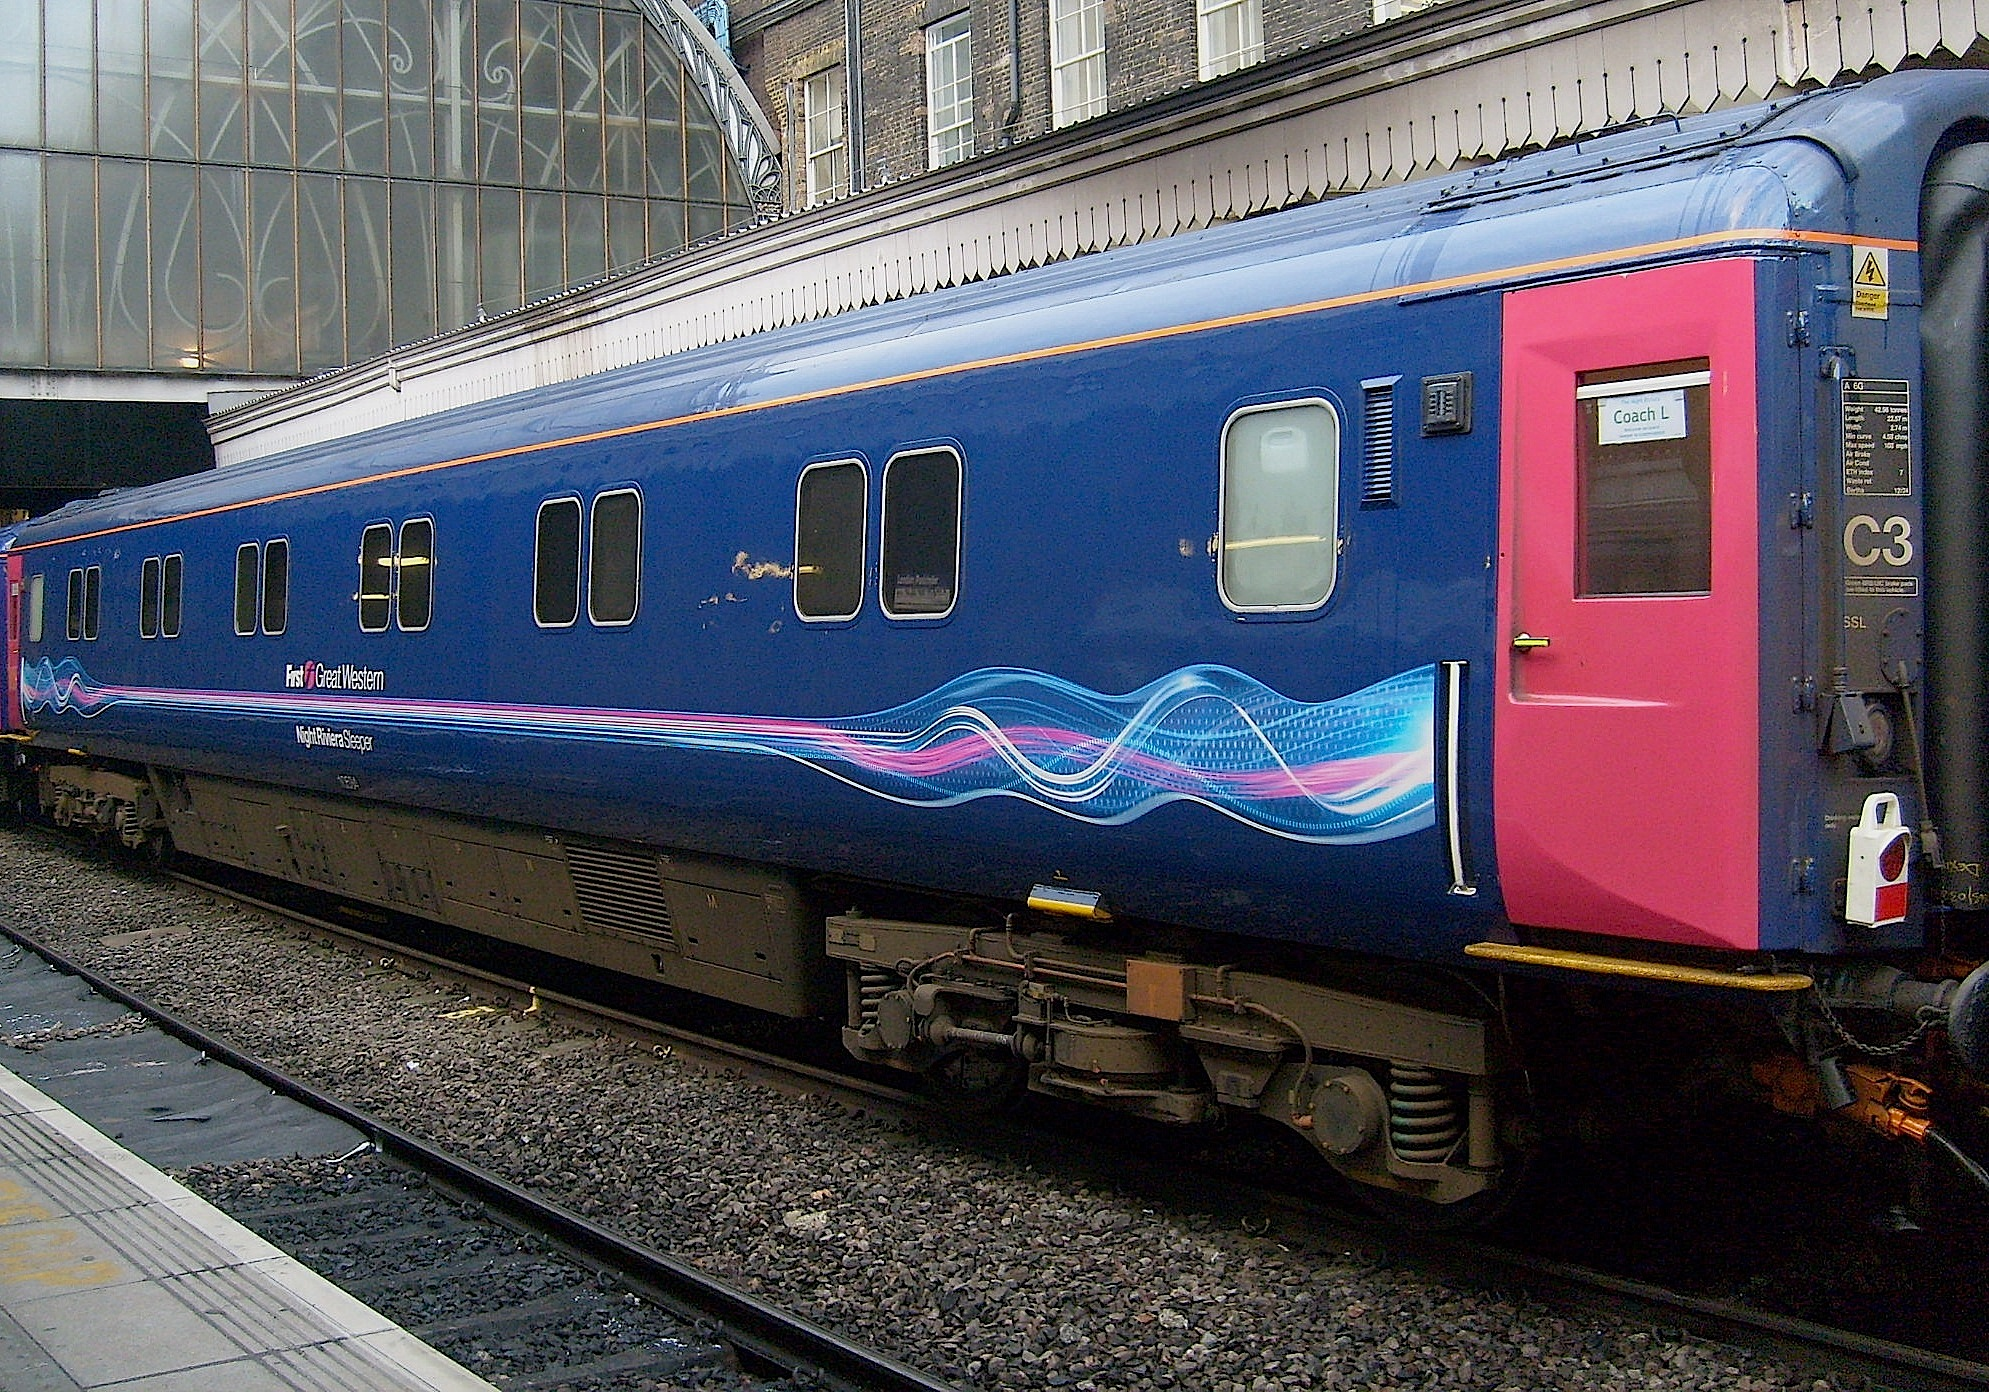 File:fgw Night Riviera Mark 3a